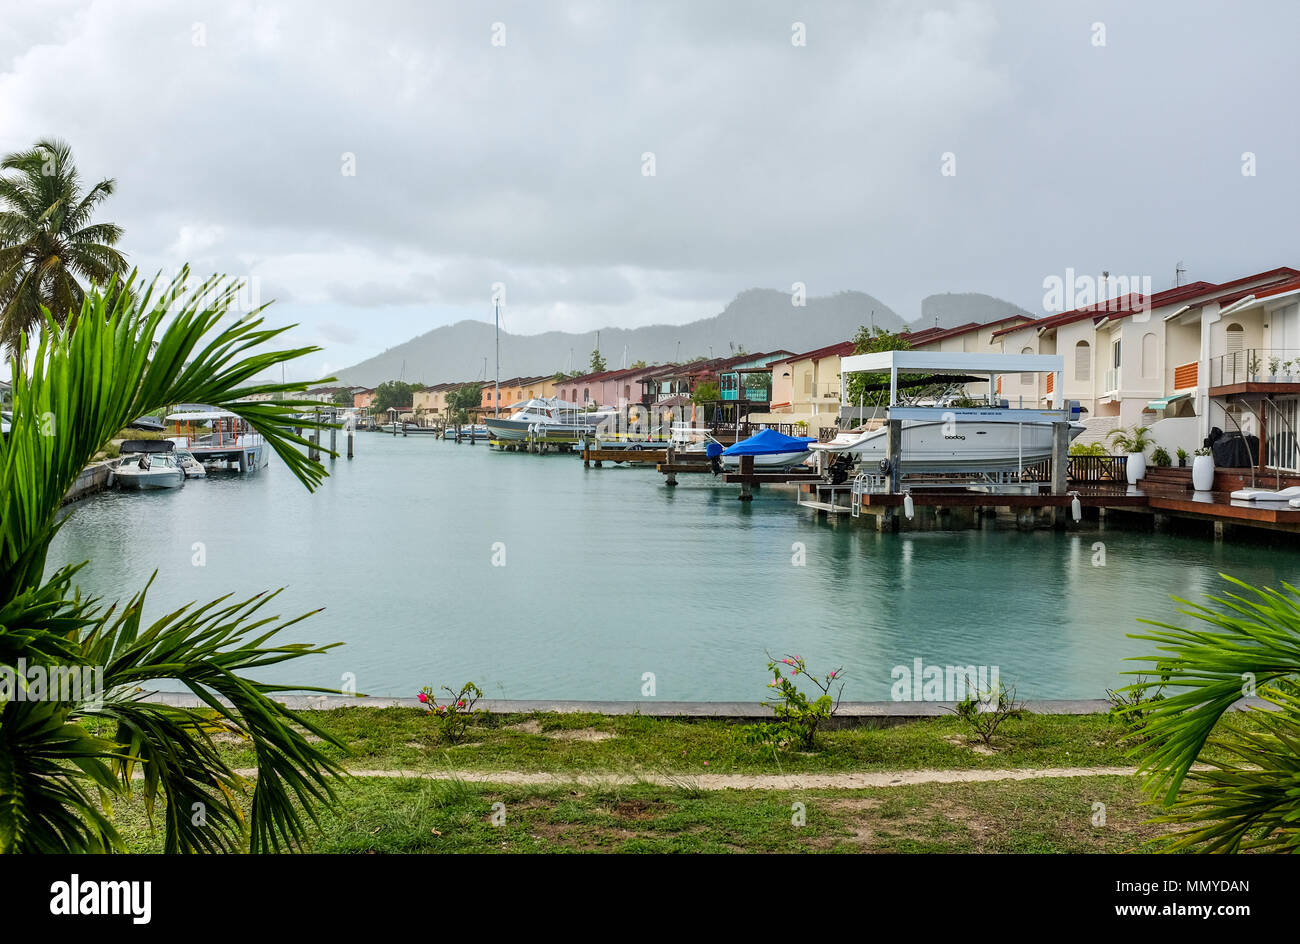 Antigua Lesser Antilles islands in the Caribbean West Indies - Holiday homes and jetties at the Jolly Harbour complex - Stock Image